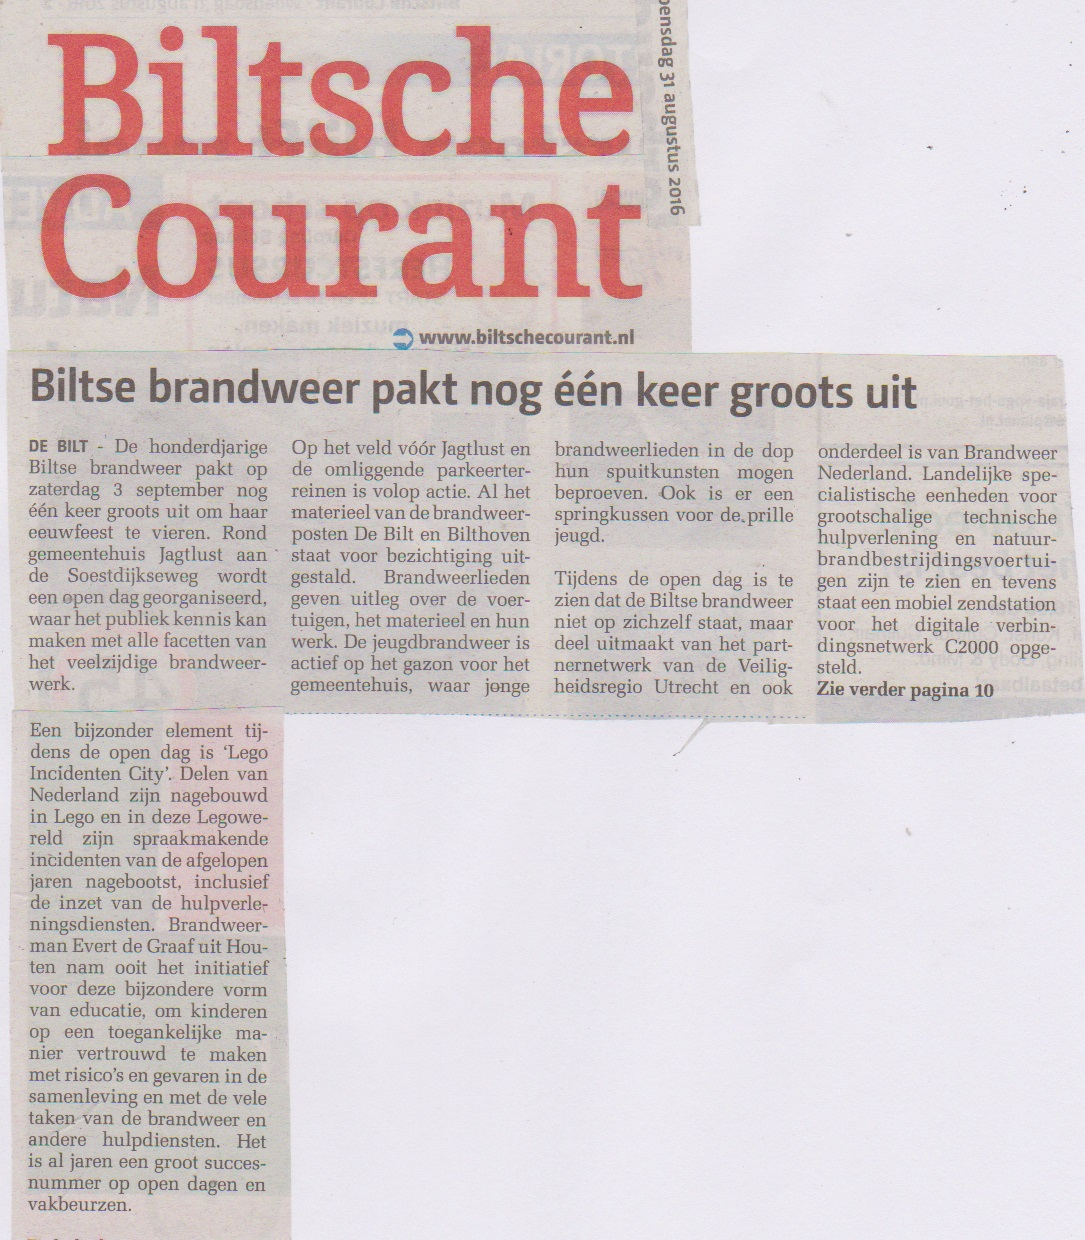 Biltse Courant Incidentencity 31 aug 2016